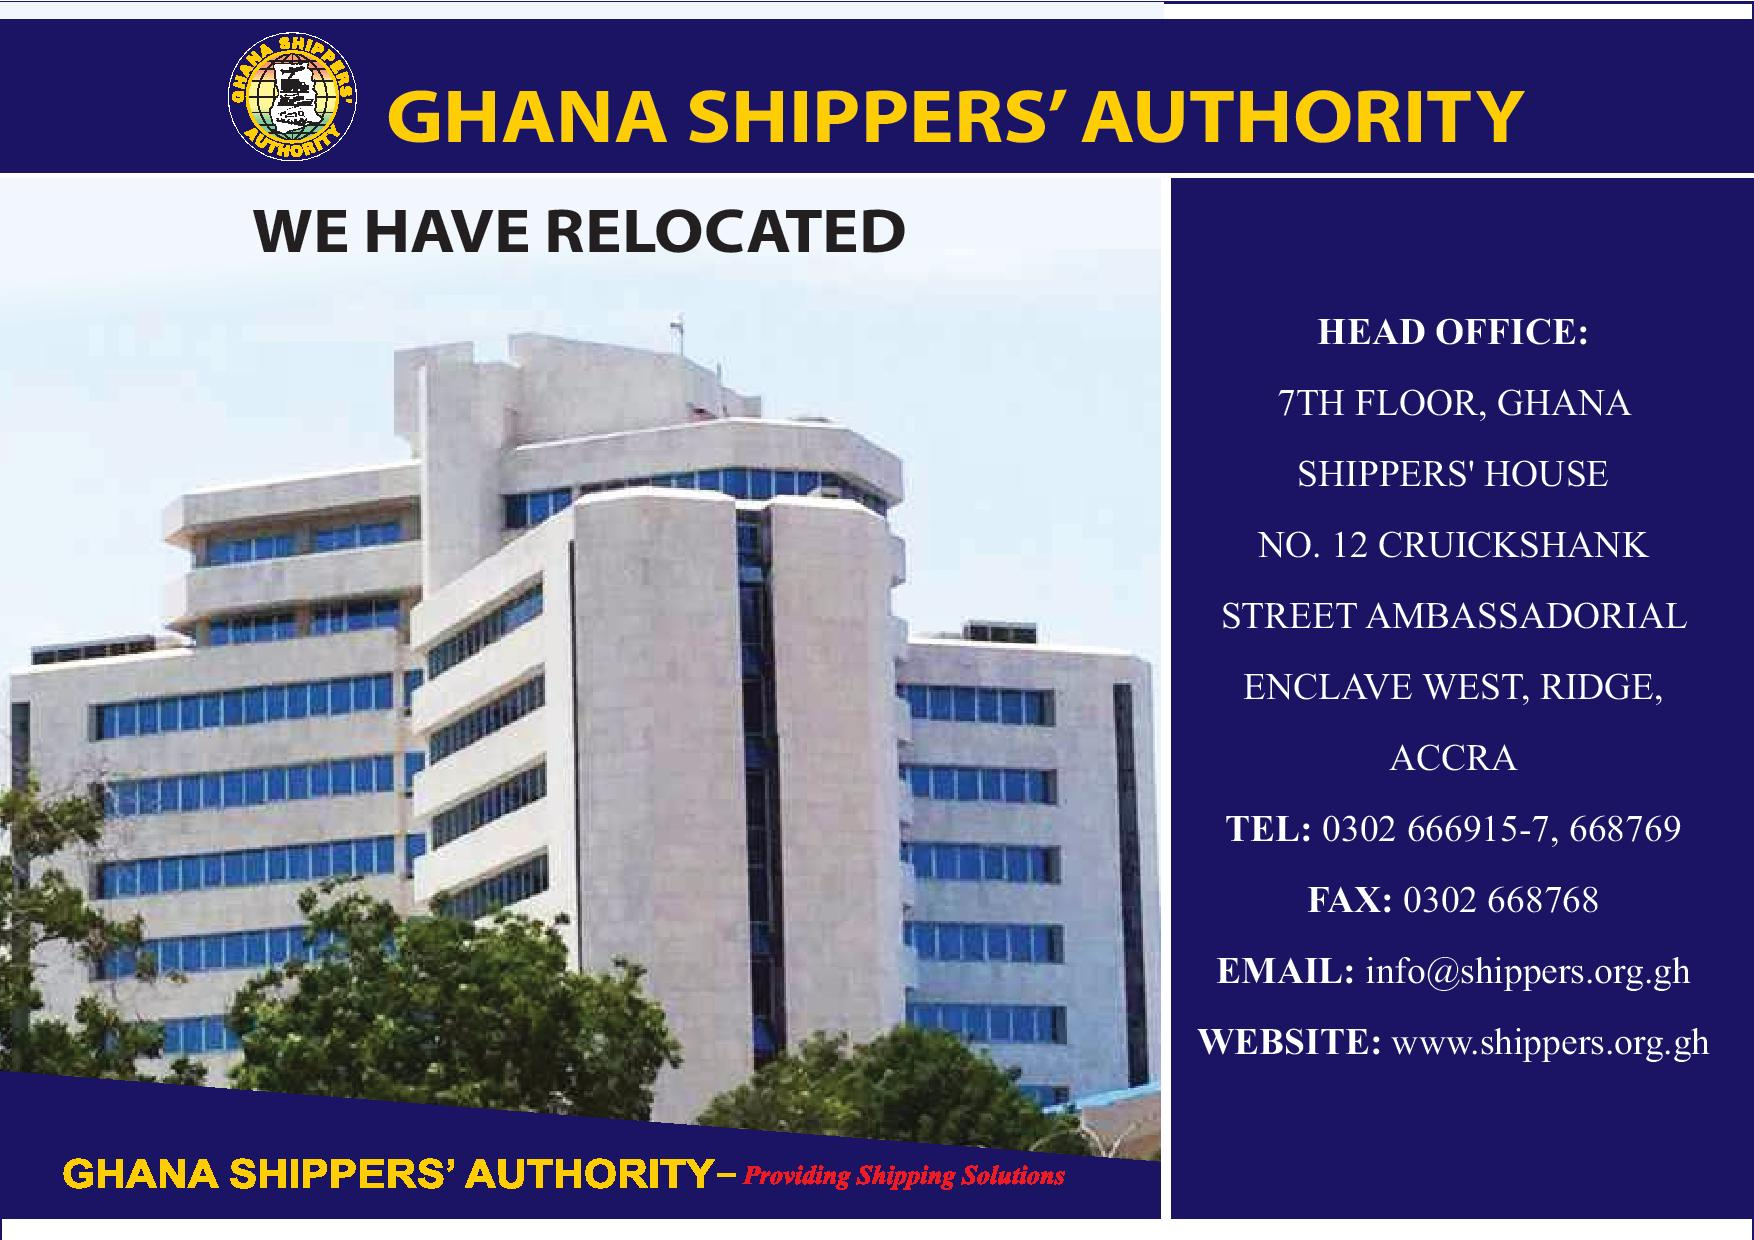 Notice of Office Relocation - Ghana Shippers Authority